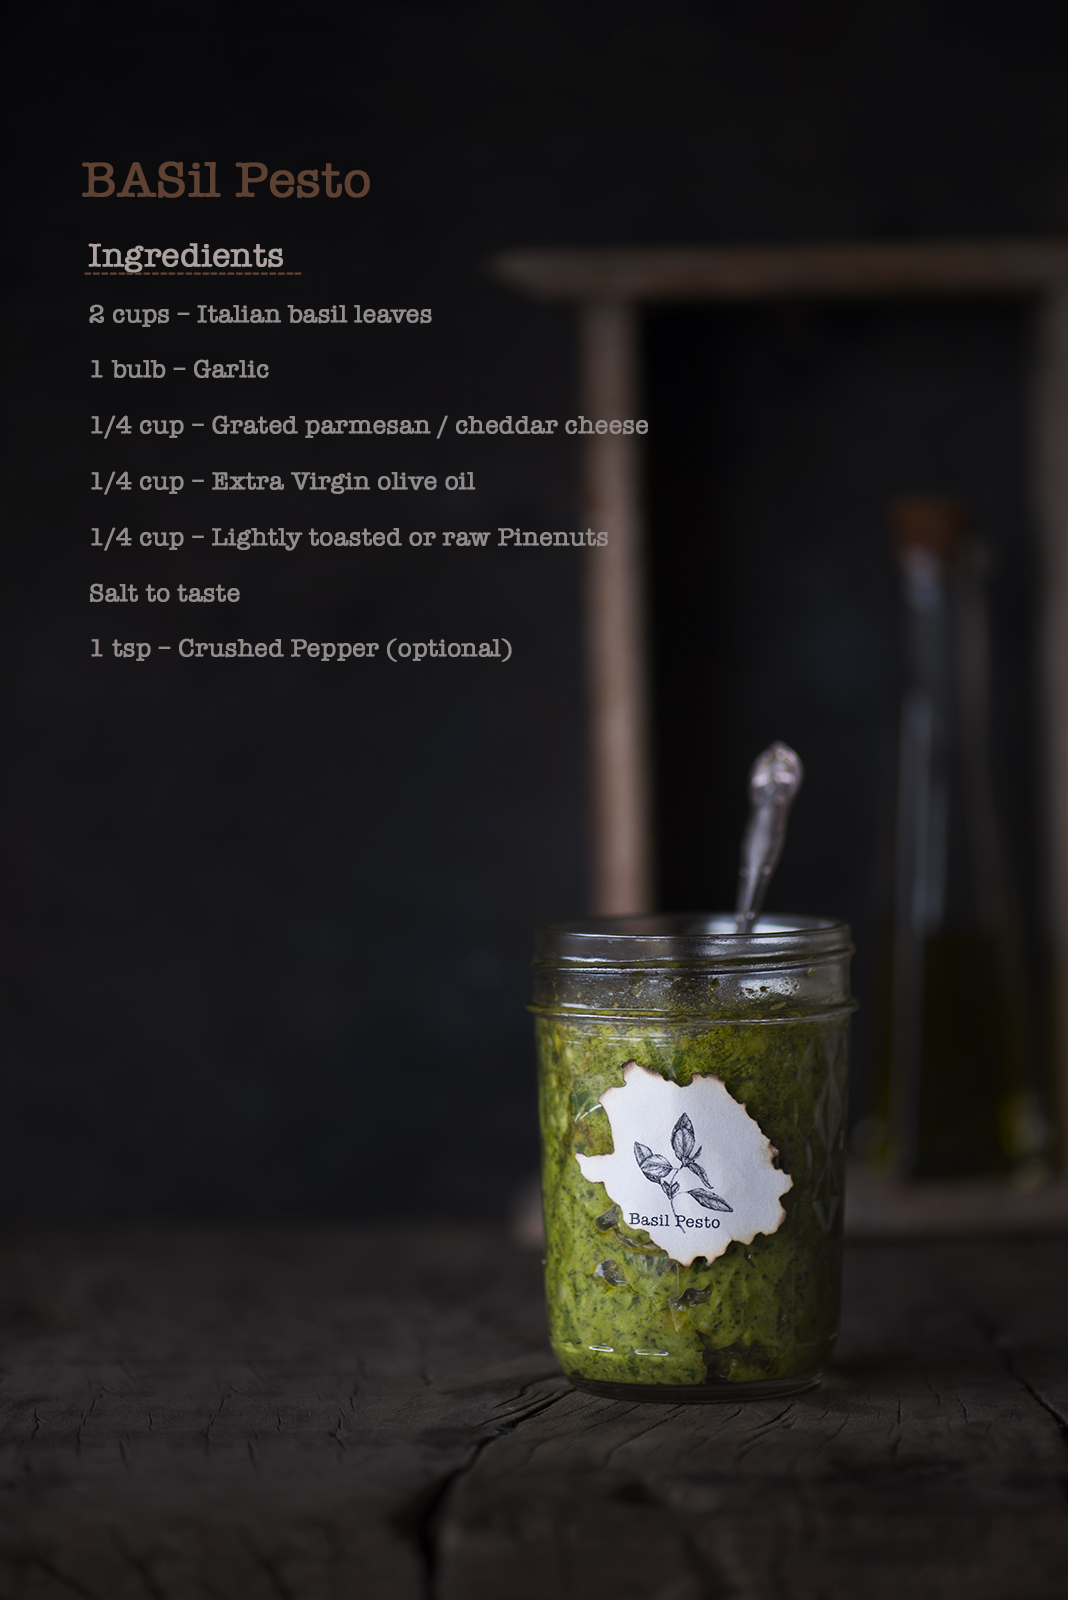 Learn how to make Basil Pesto with this easy peasy recipe using Fresh Basil leaves, Garlic, Pine nuts, Parmesan Cheese and Olive oil. Basil Pesto is one of basics inItalian dishes.